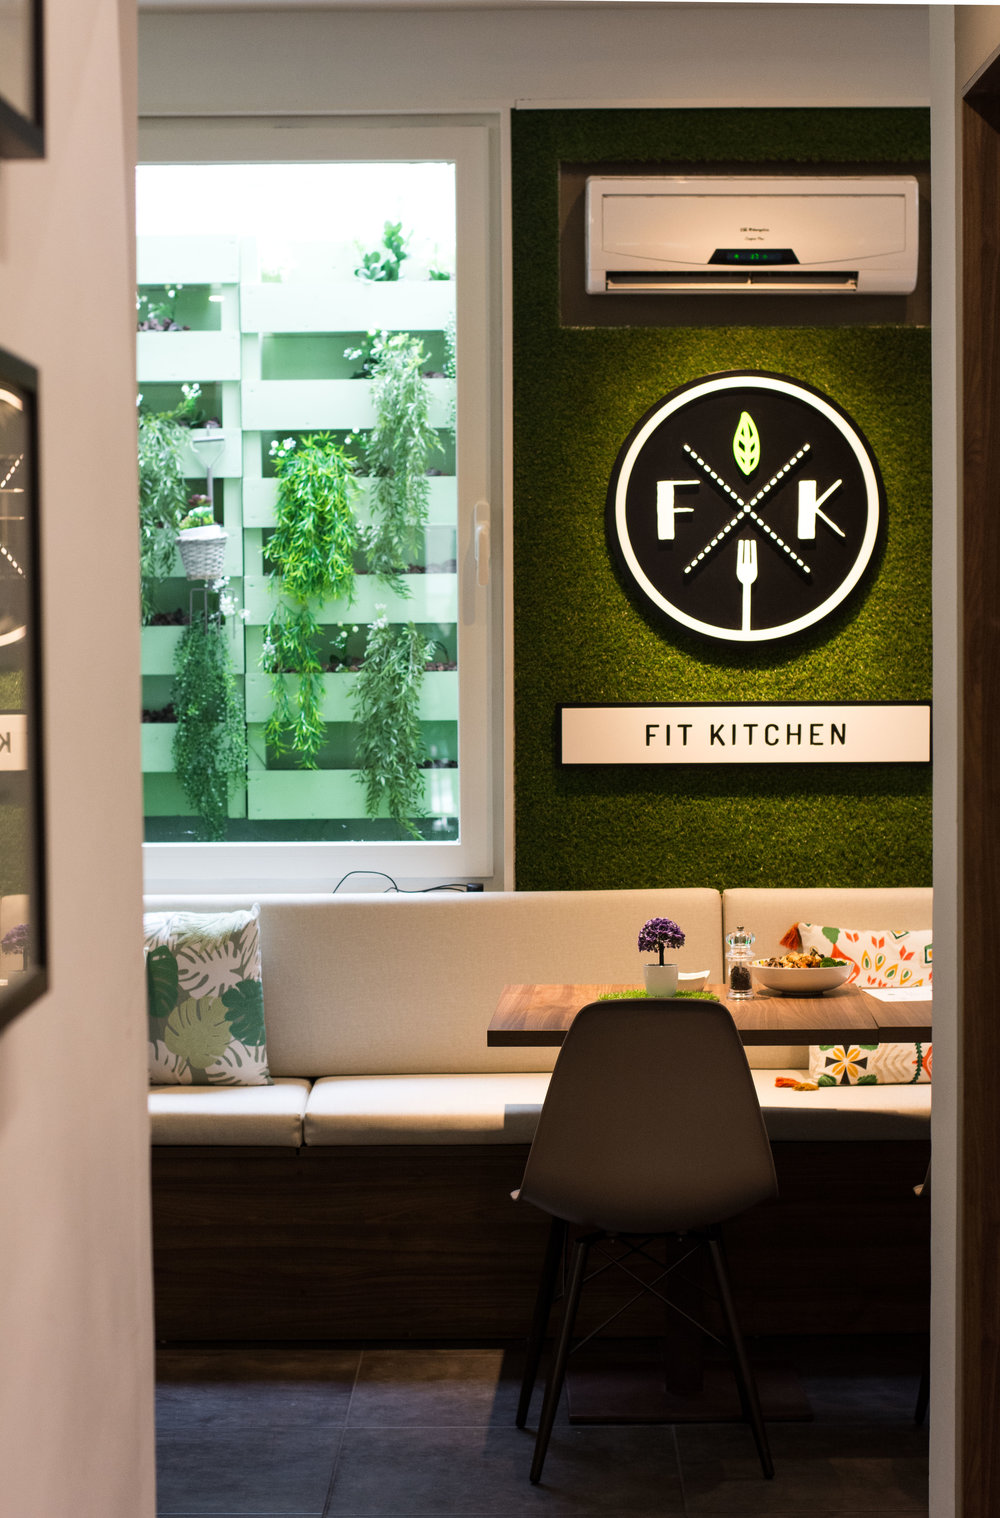 Fit Kitchen Barcelona